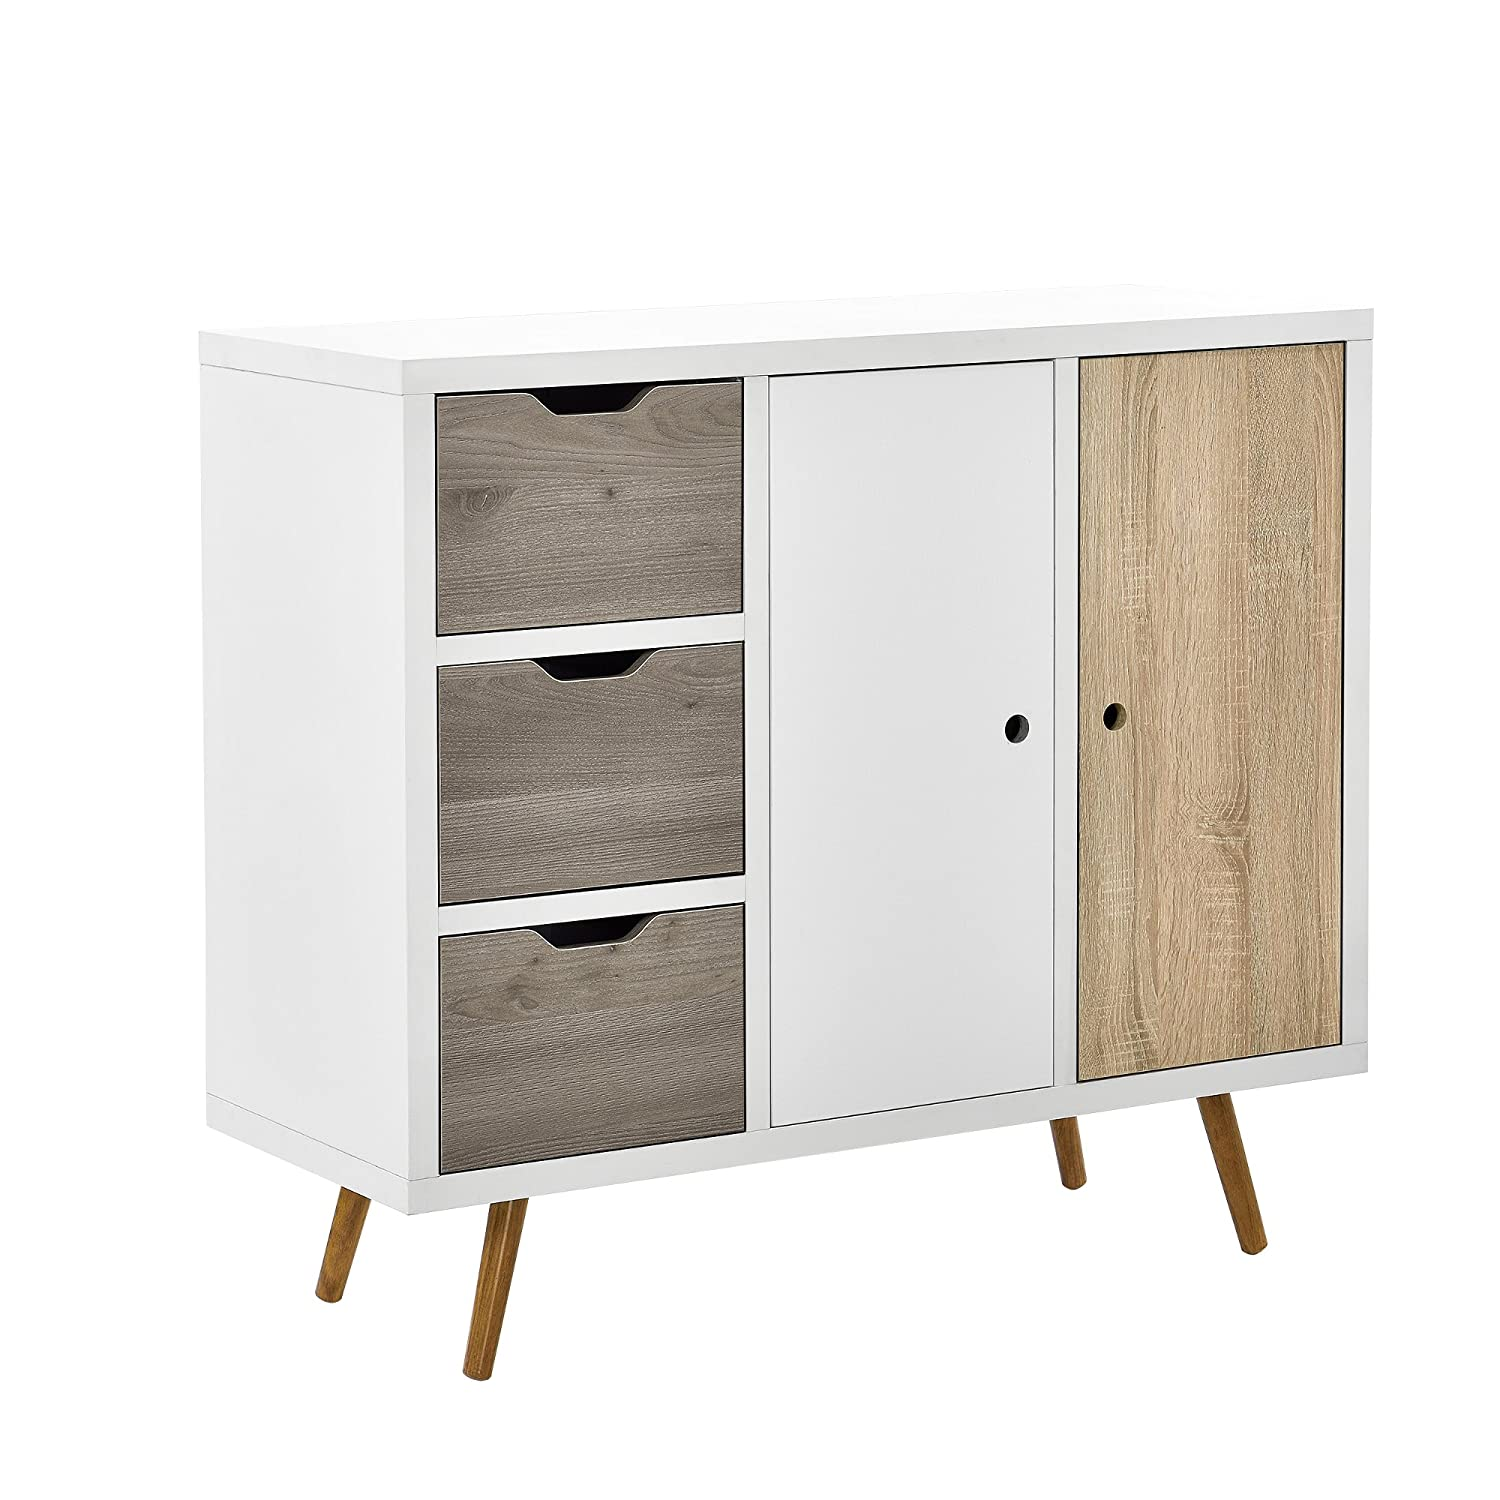 [en.casa]® Design Highboard Commode buffet armoire Blanc-Chêne table d'appoint